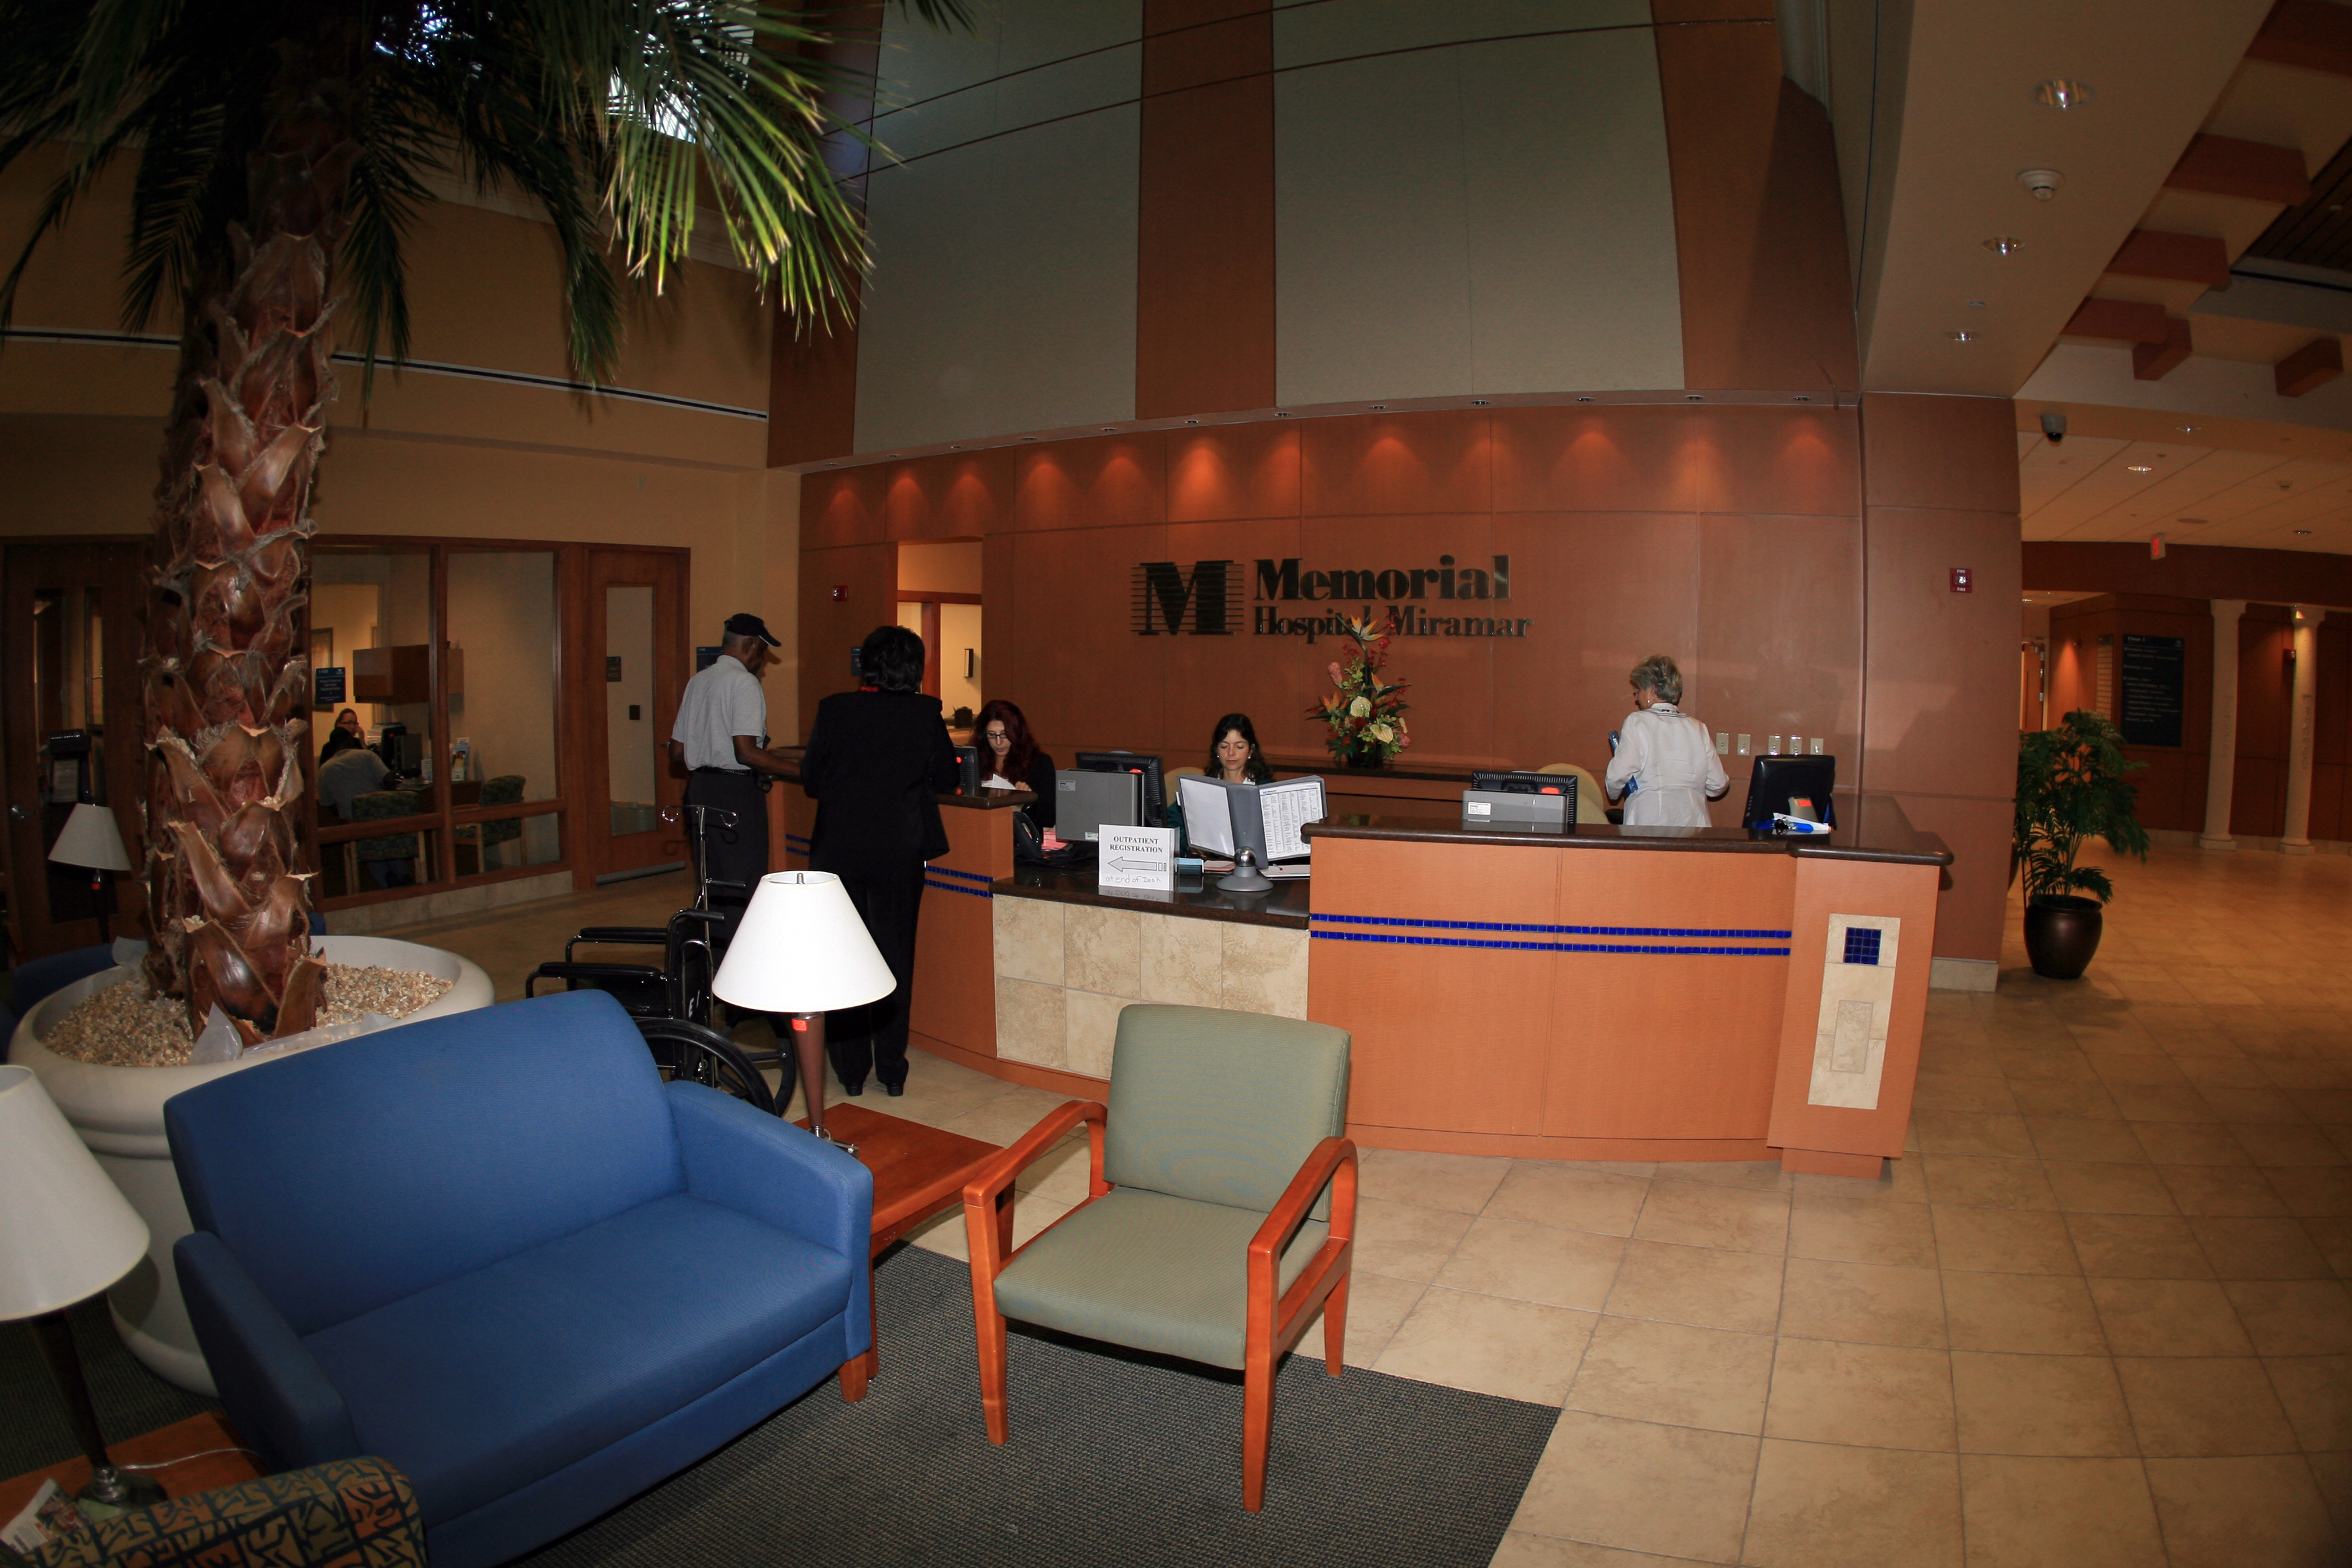 The lobby of the Memorial Hospital Miramar with people working at and standing around the front desk